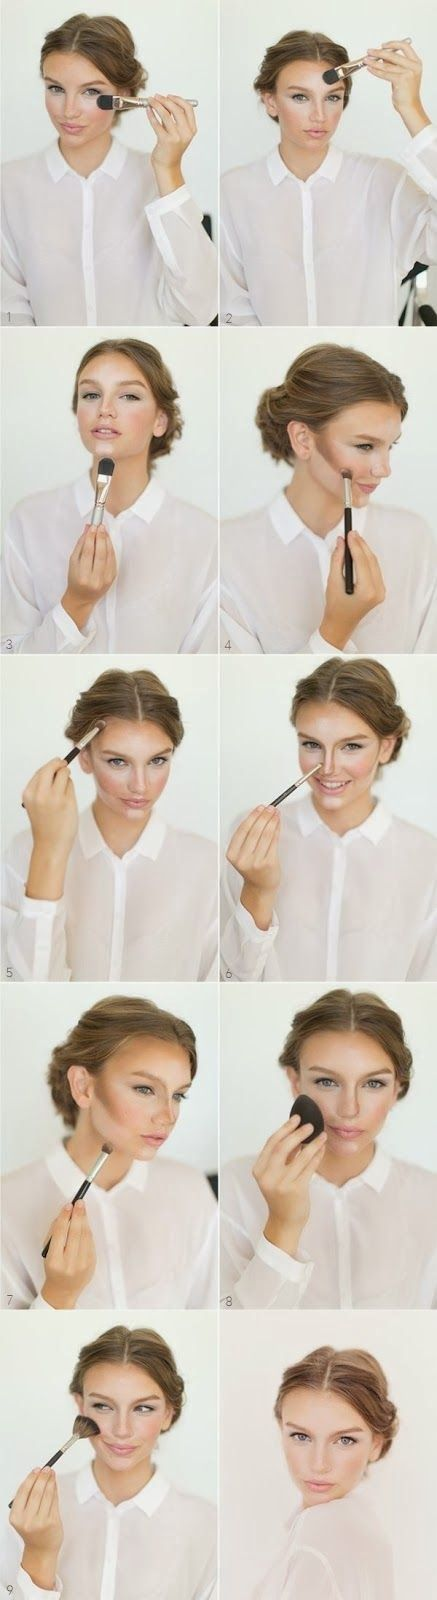 HOW TO CONTOUR AND HIGHLIGHT IN BEAUTIFUL EASY WAY http://howtochic.blogspot.it/2013/12/how-to-contour-and-highlight-in.html